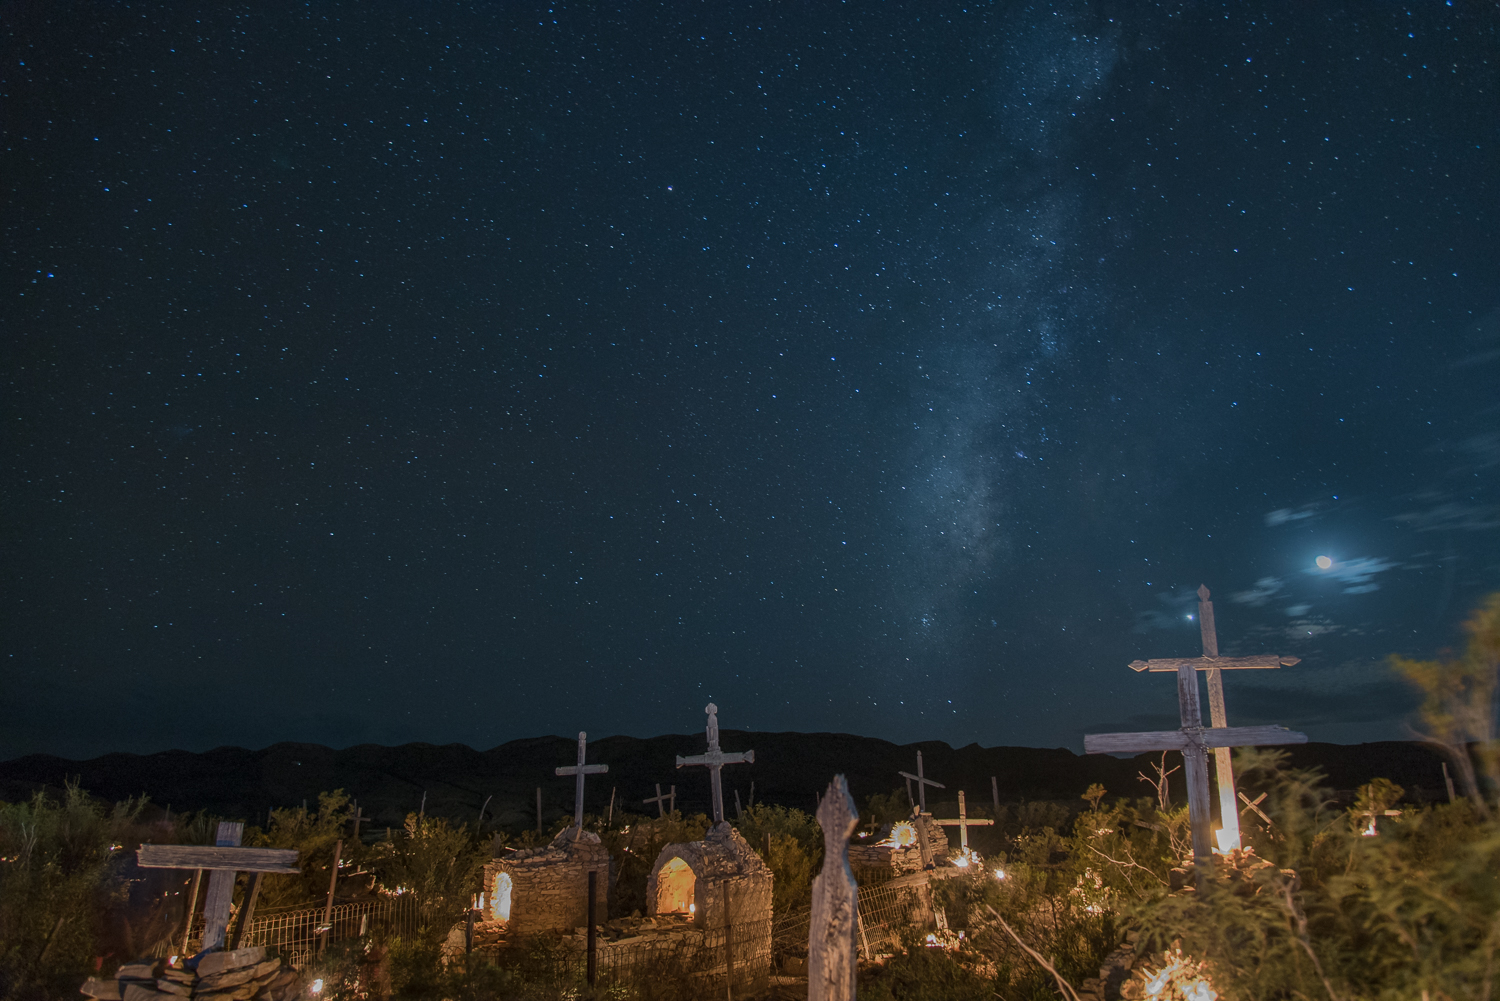 © Ayash Basu. Over 400 candles, millions of stars and an occasional moon keep the Terlingua cemetery lit up throughout the night. It's one dreamlike sight.